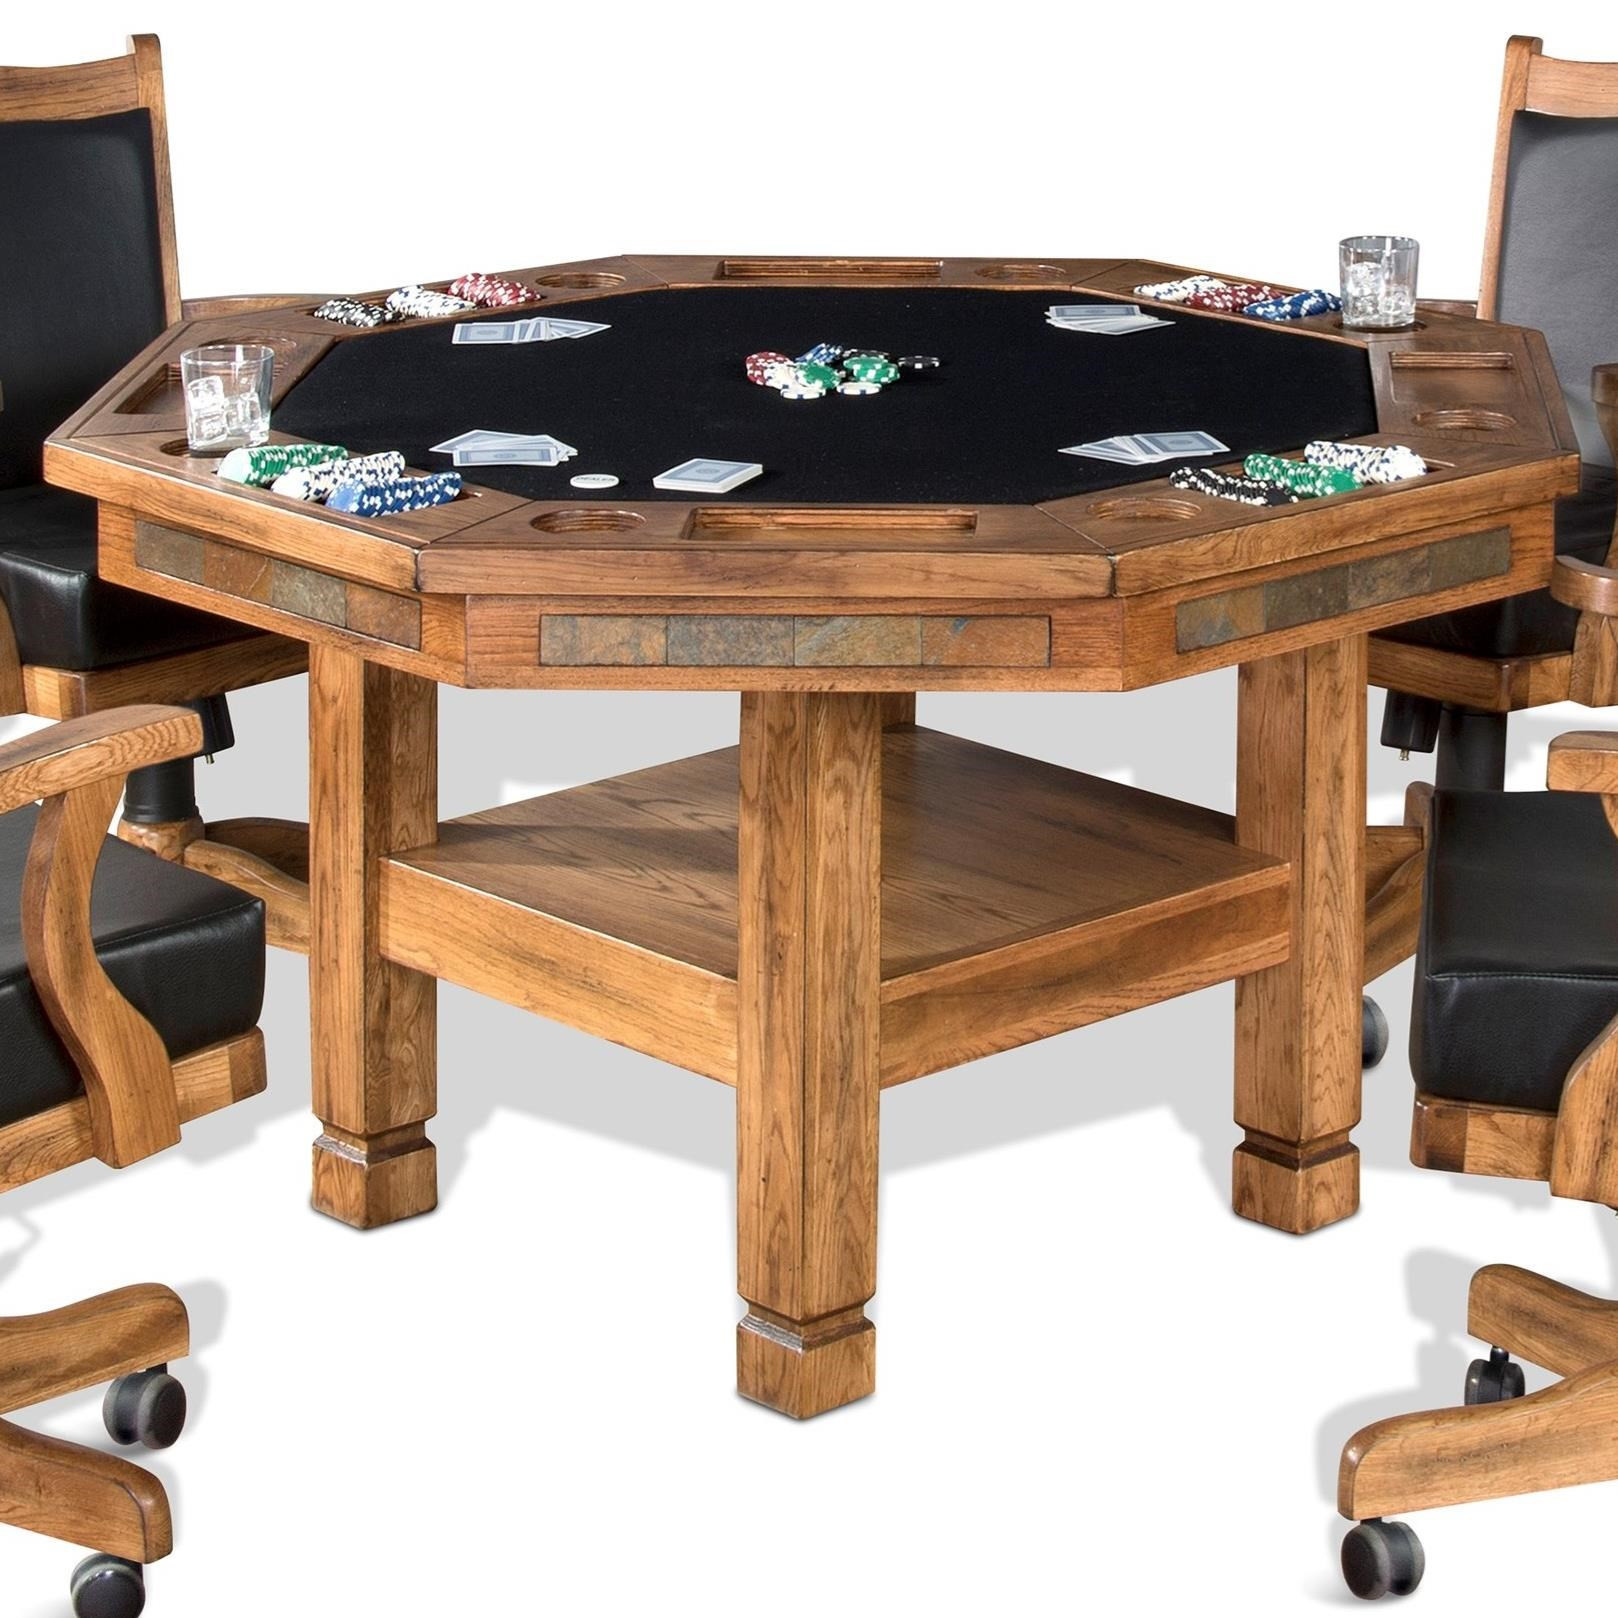 Dinner Table Game  Sunny Designs Sedona Reversible Top Game & Dining Table